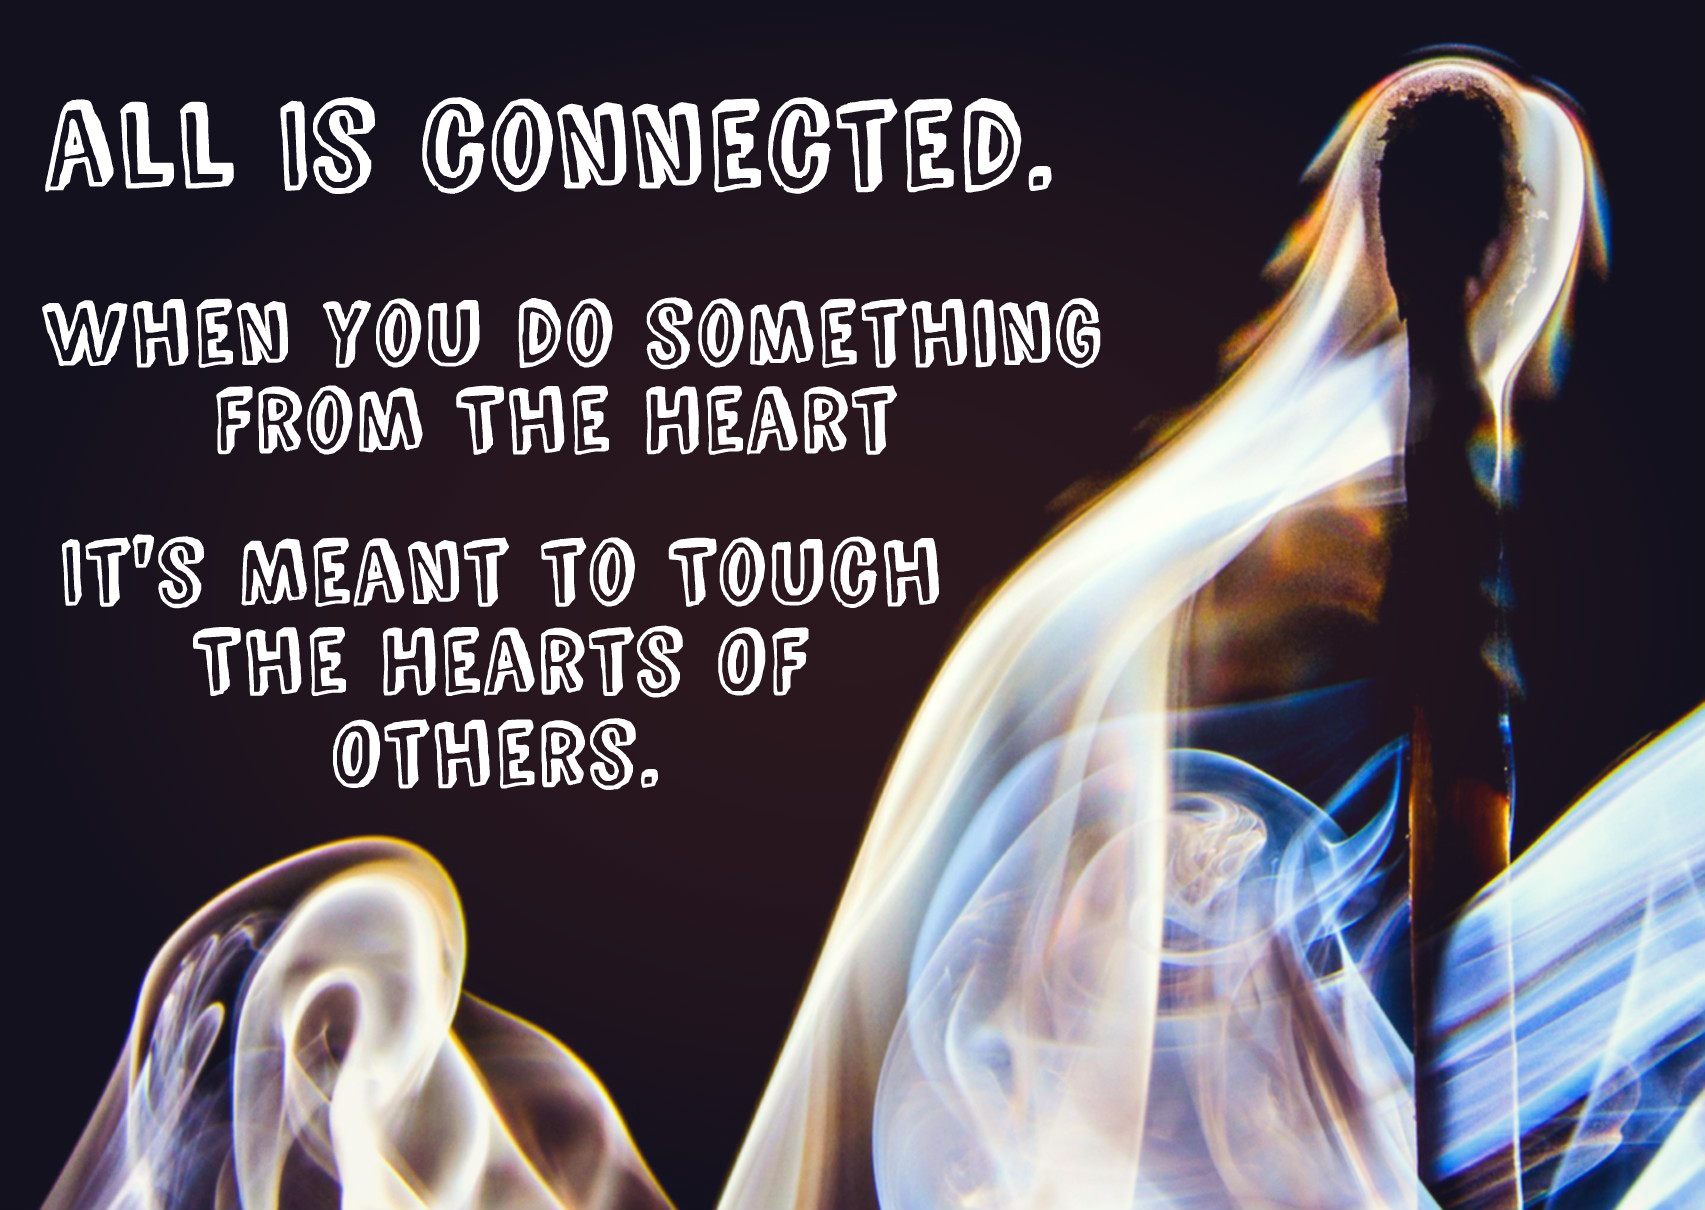 when you do something from the heart, it will touch the hearts of others